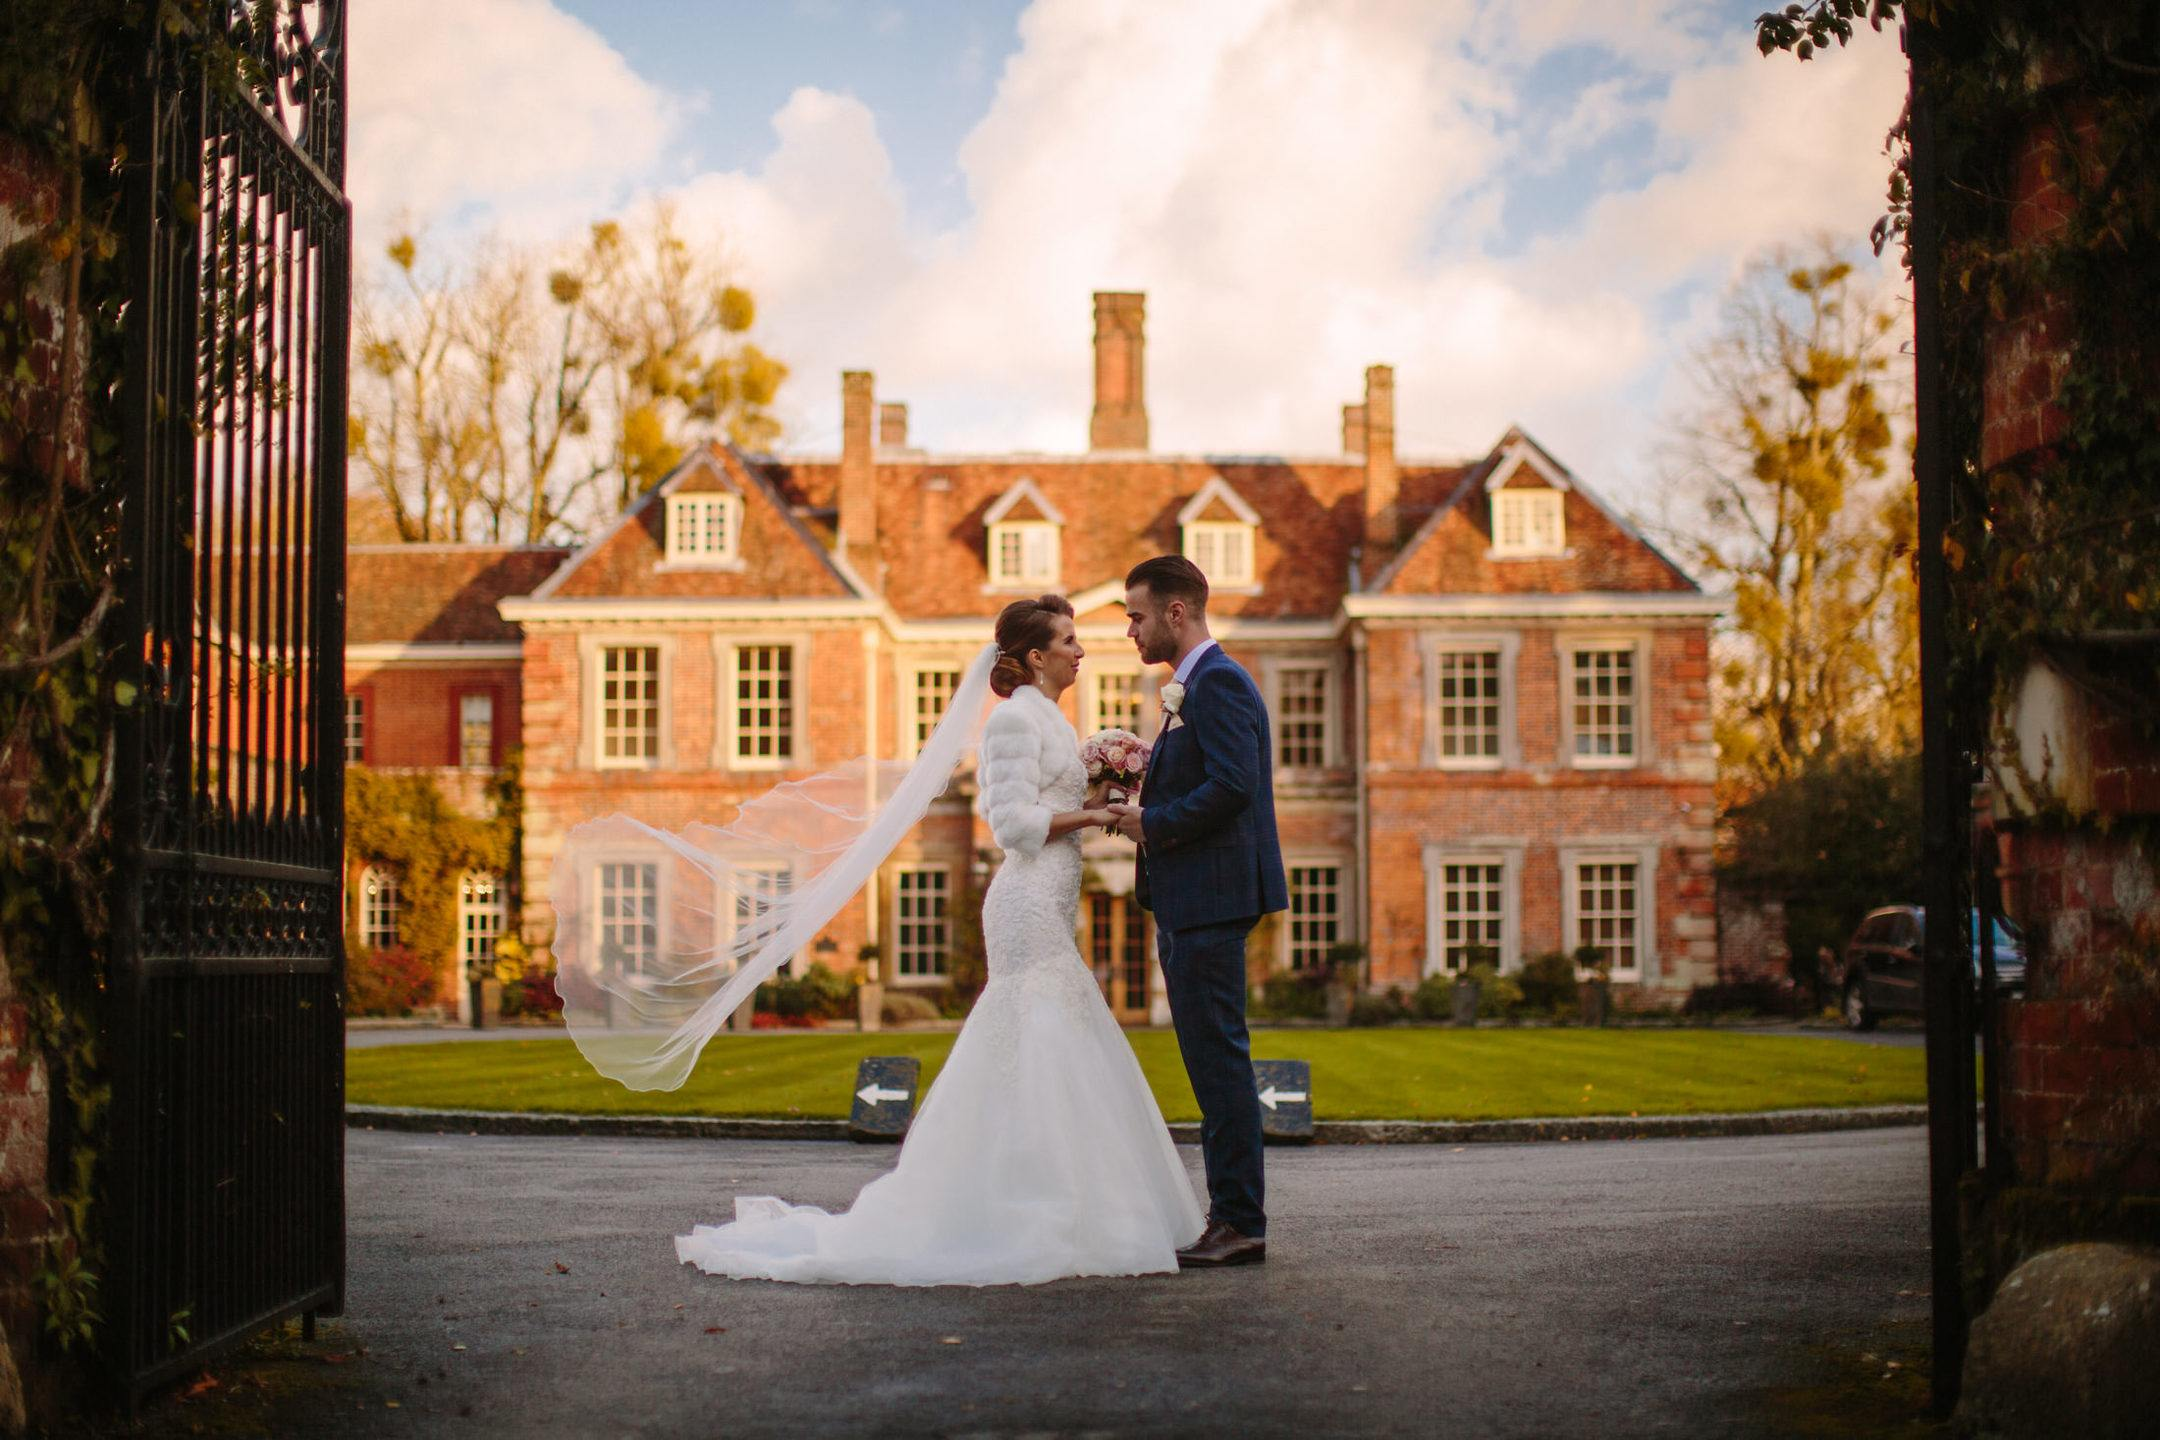 Lainston House Autumn Wedding - Nisha Haq Photography